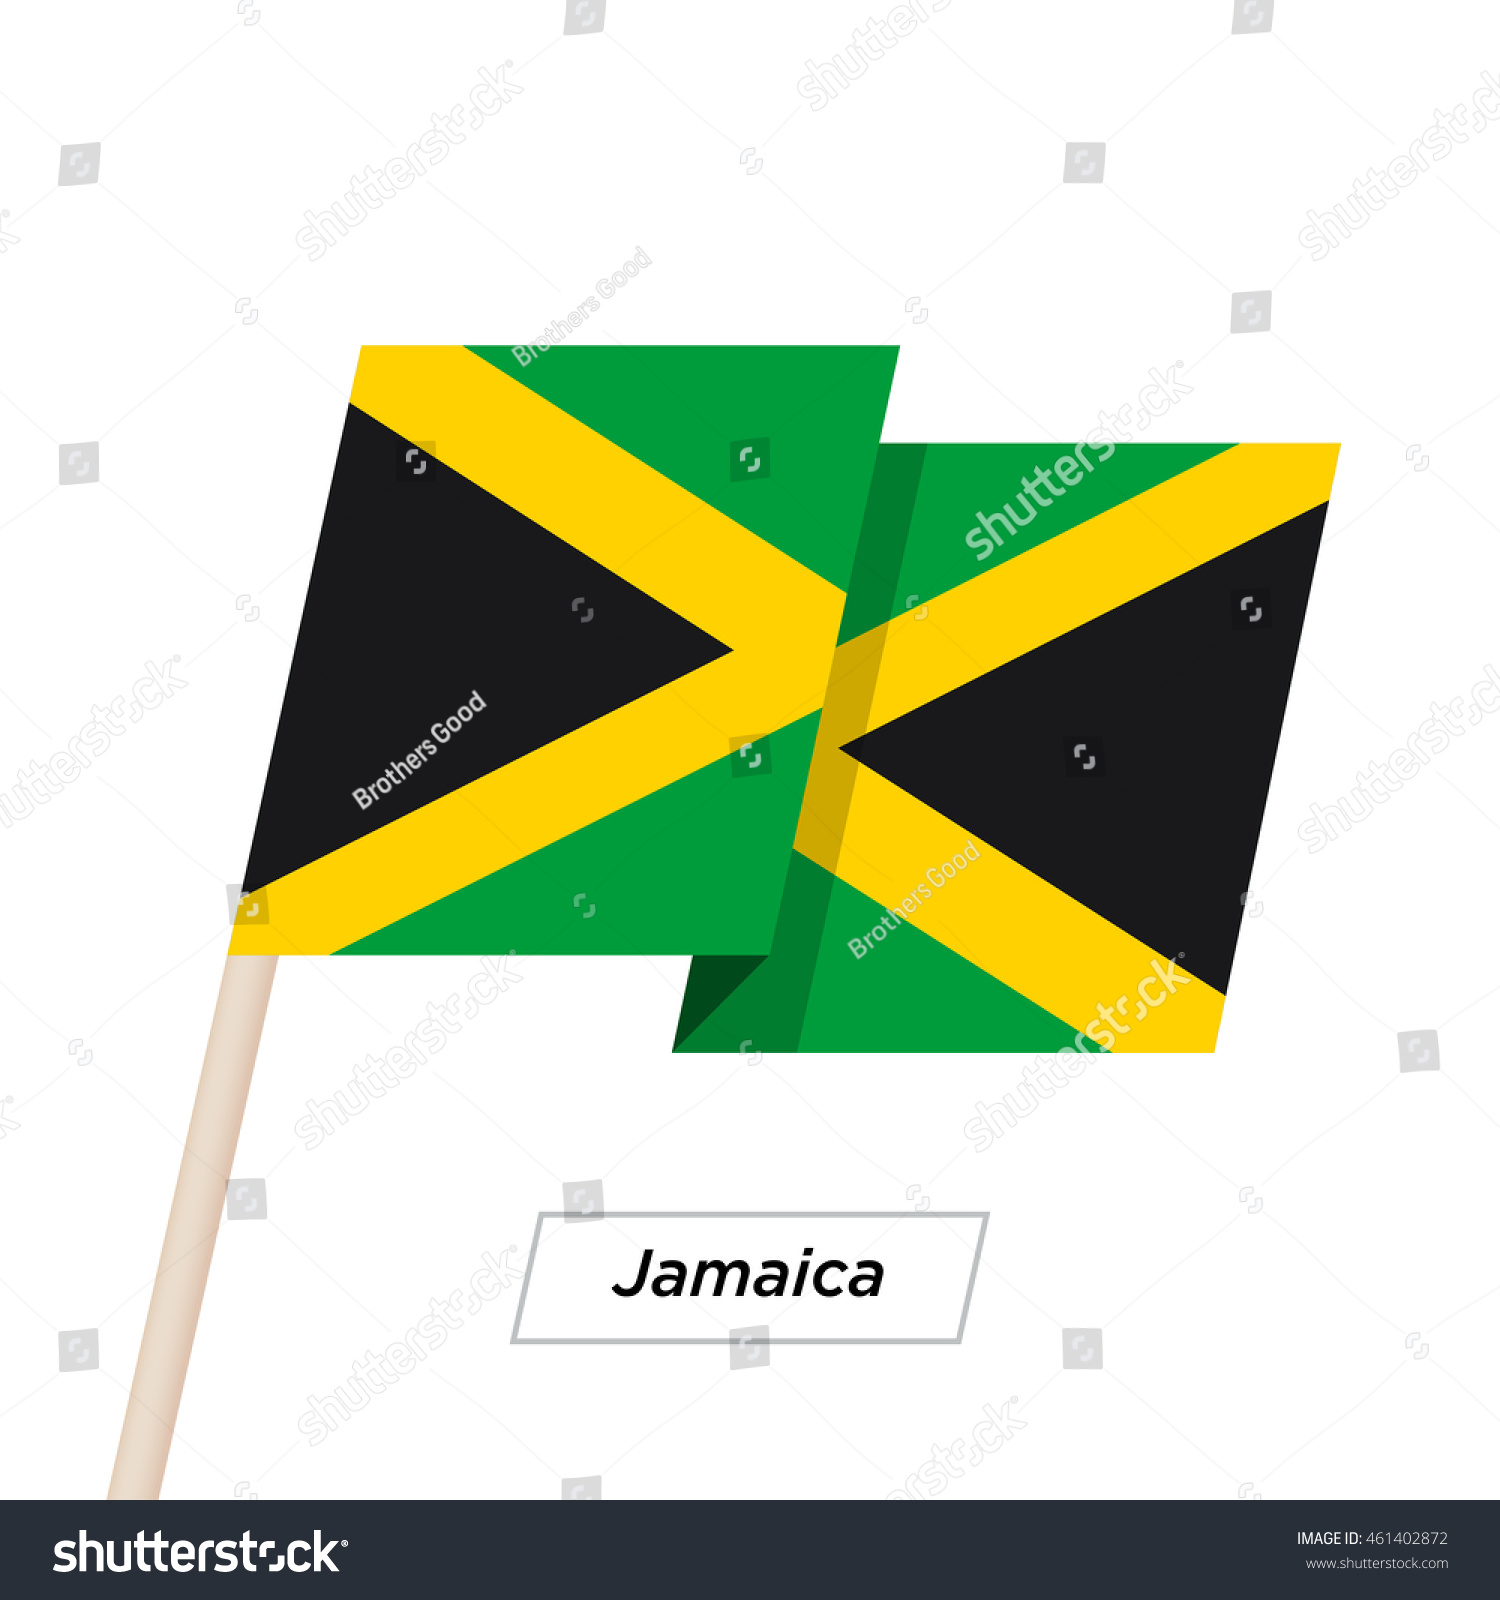 Jamaica Ribbon Waving Flag Isolated On Vector de stock461402872 ...